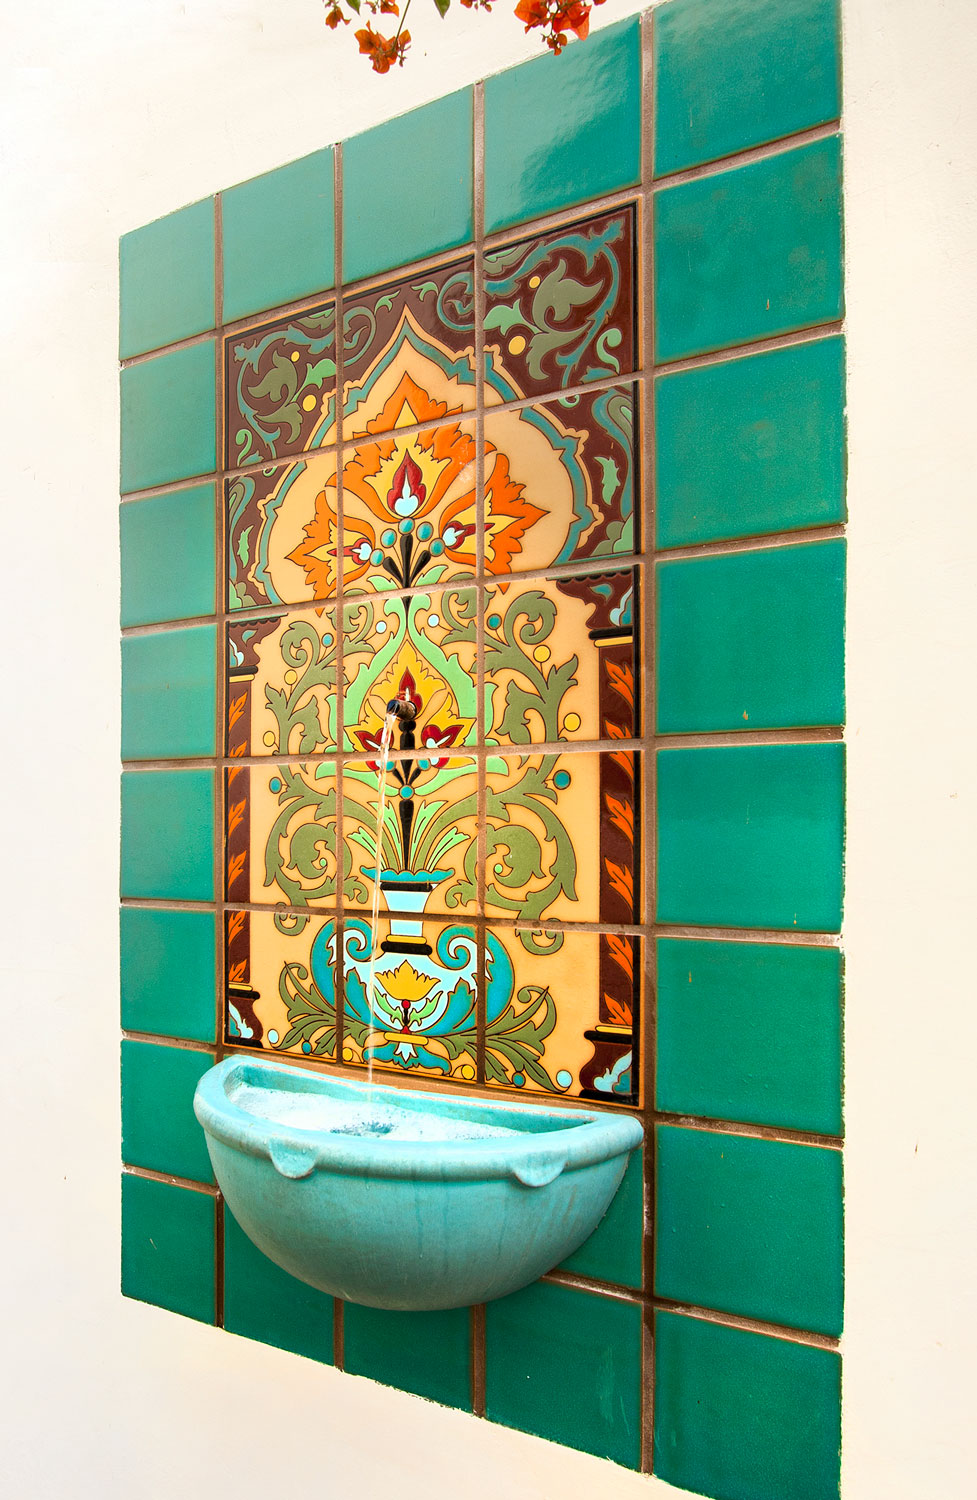 19-spanish-tile-wall-fountain-gary-drake-general-contractor.jpg